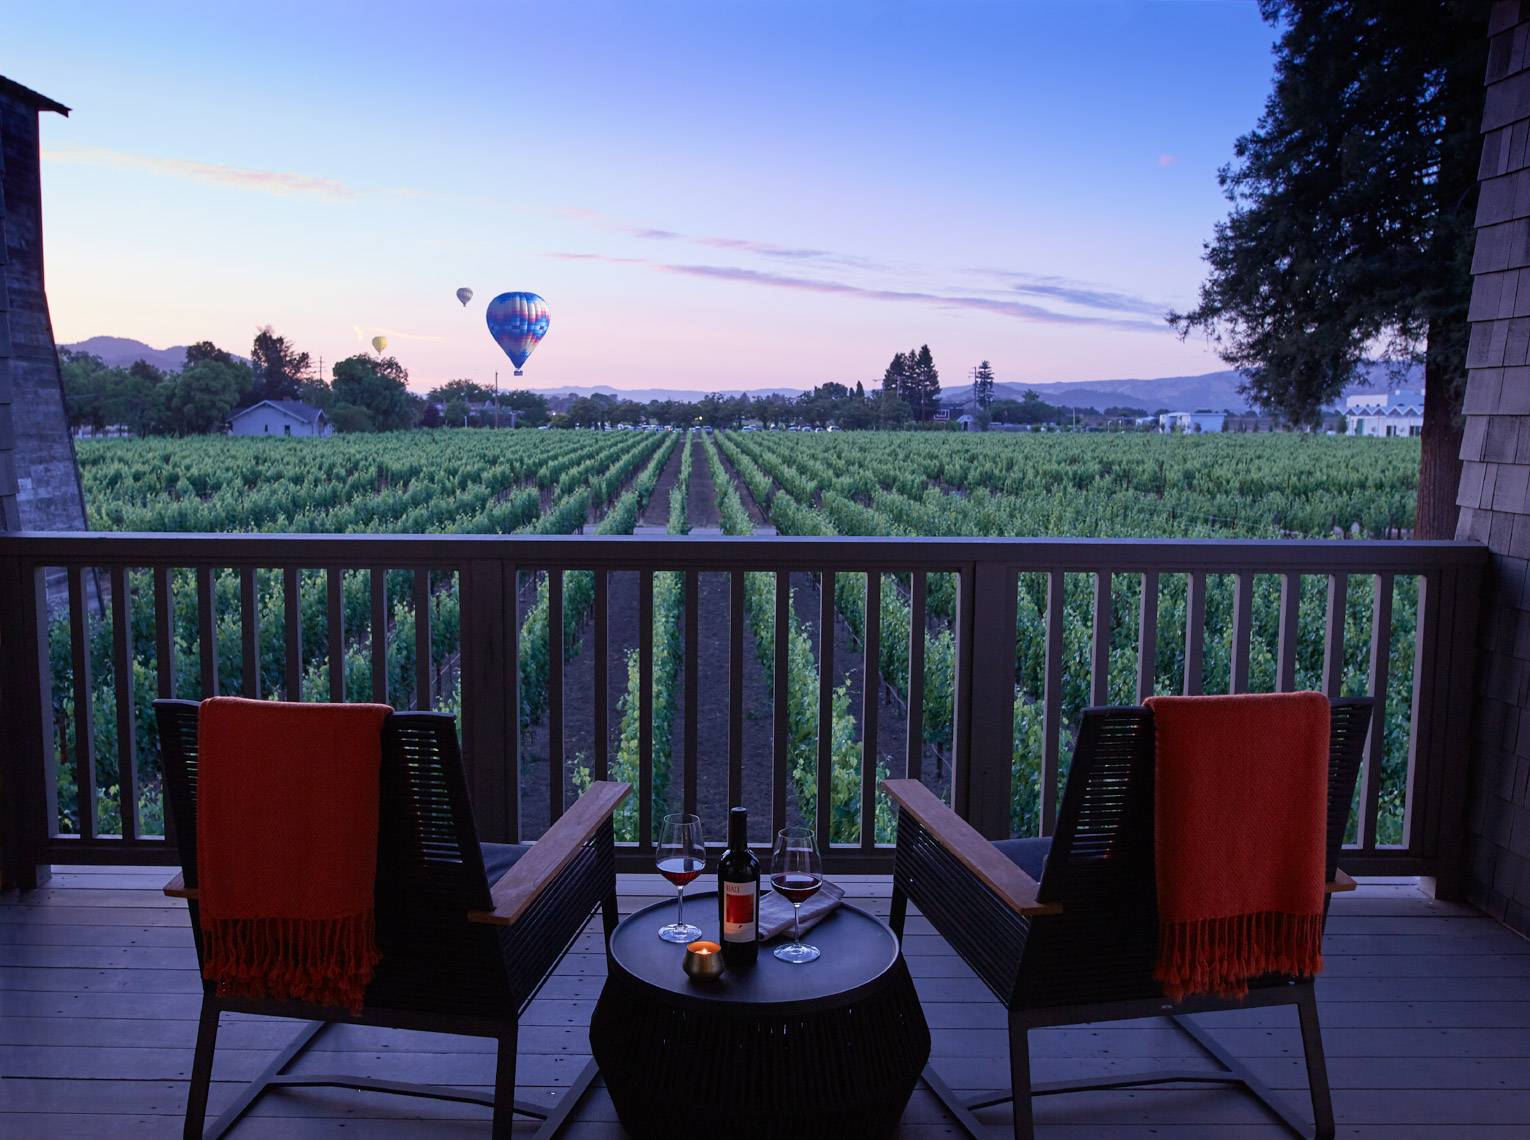 Morning hot air balloons lifting off over the vinyards shot for Senza Hotel and Spa in Napa California